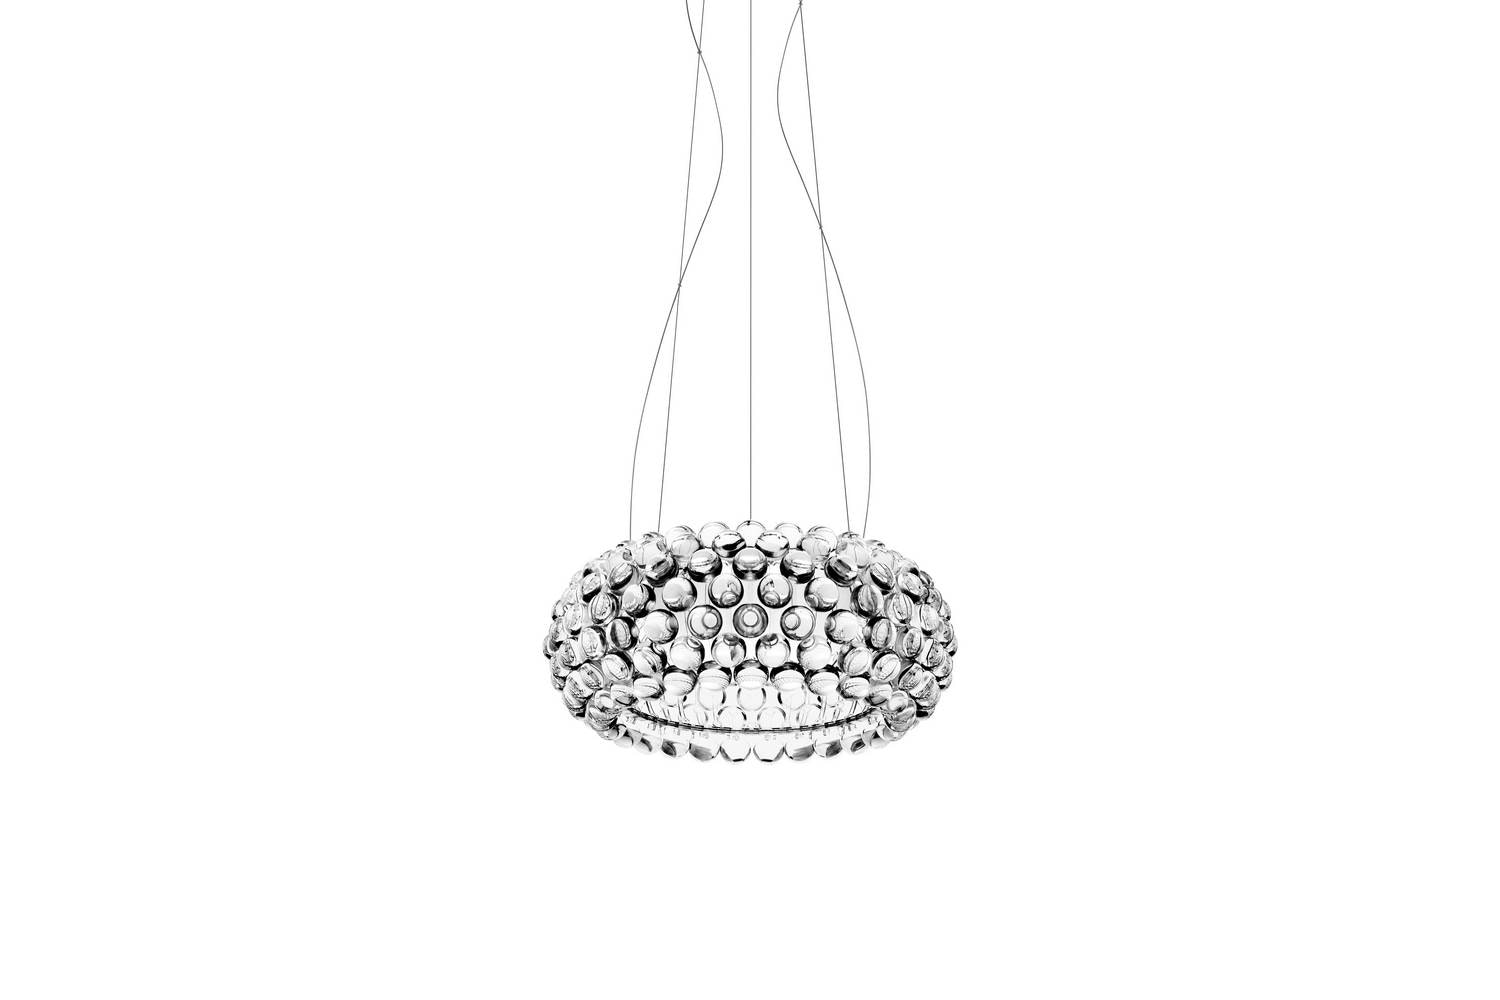 Caboche Media Suspension Lamp by Patricia Urquiola & Eliana Gerotto for Foscarini